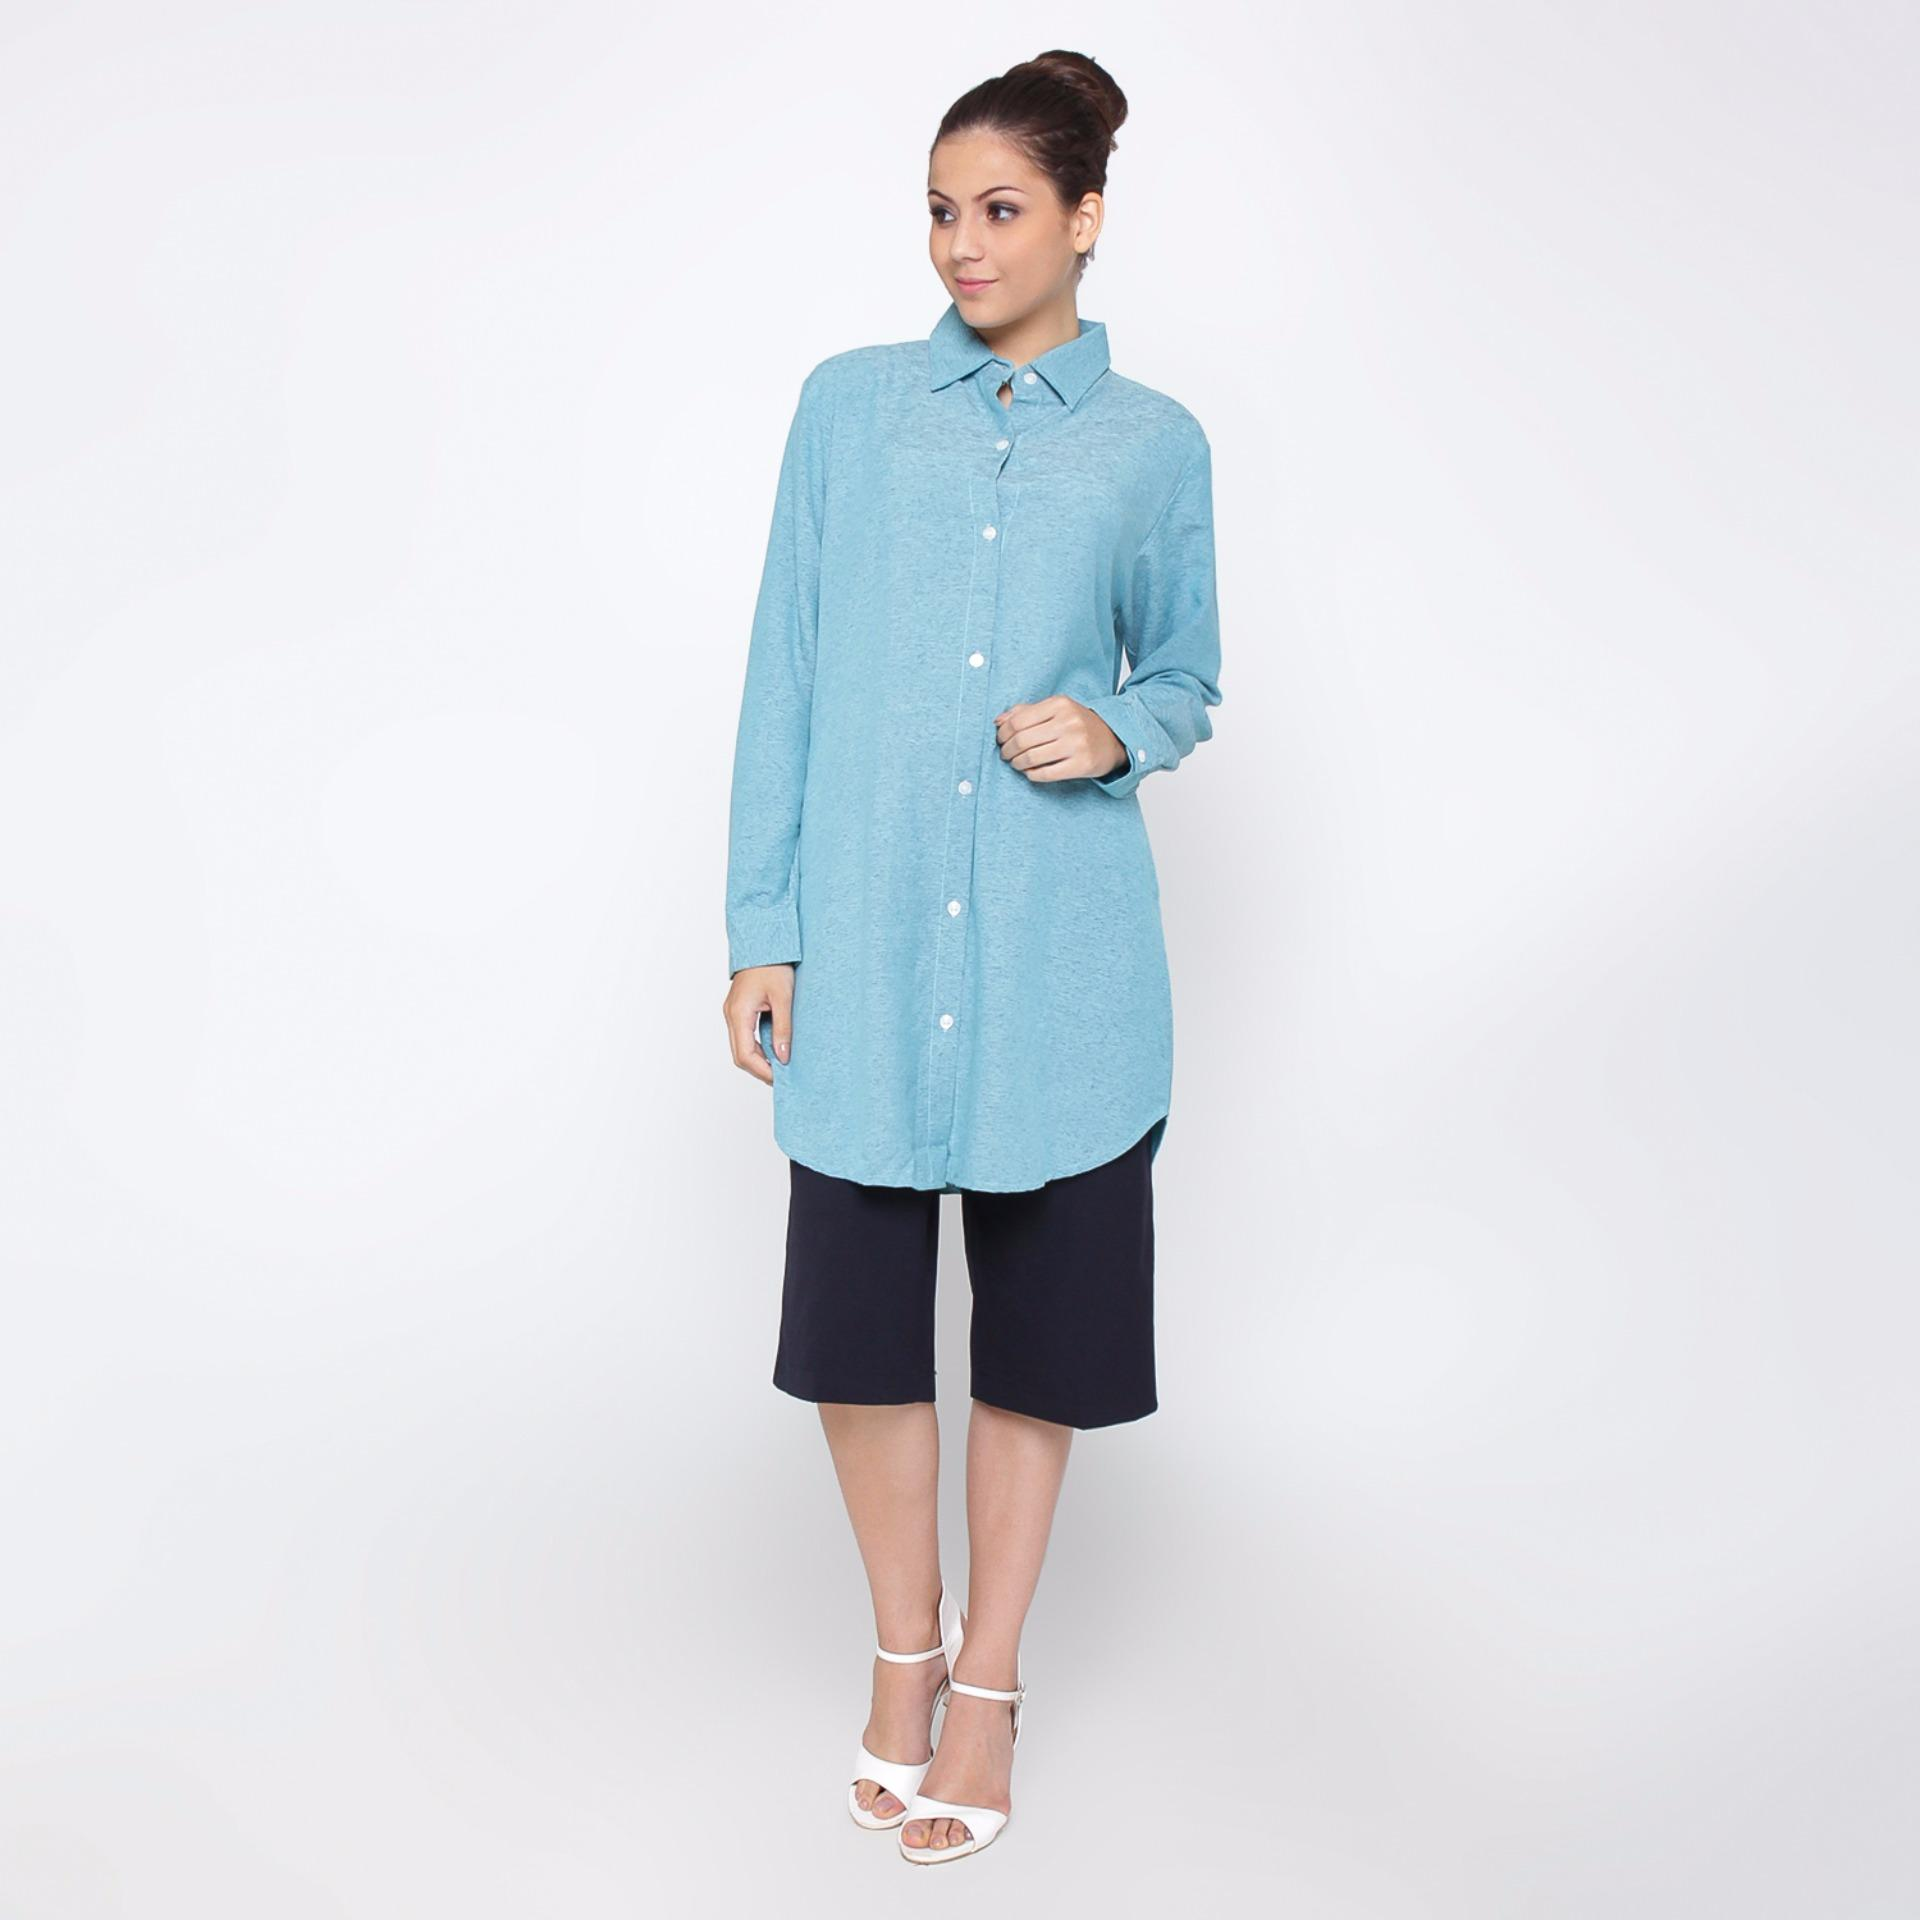 Jfashion Tunik wanita Tangan Panjang Long Sleeve - Arumi Biru .